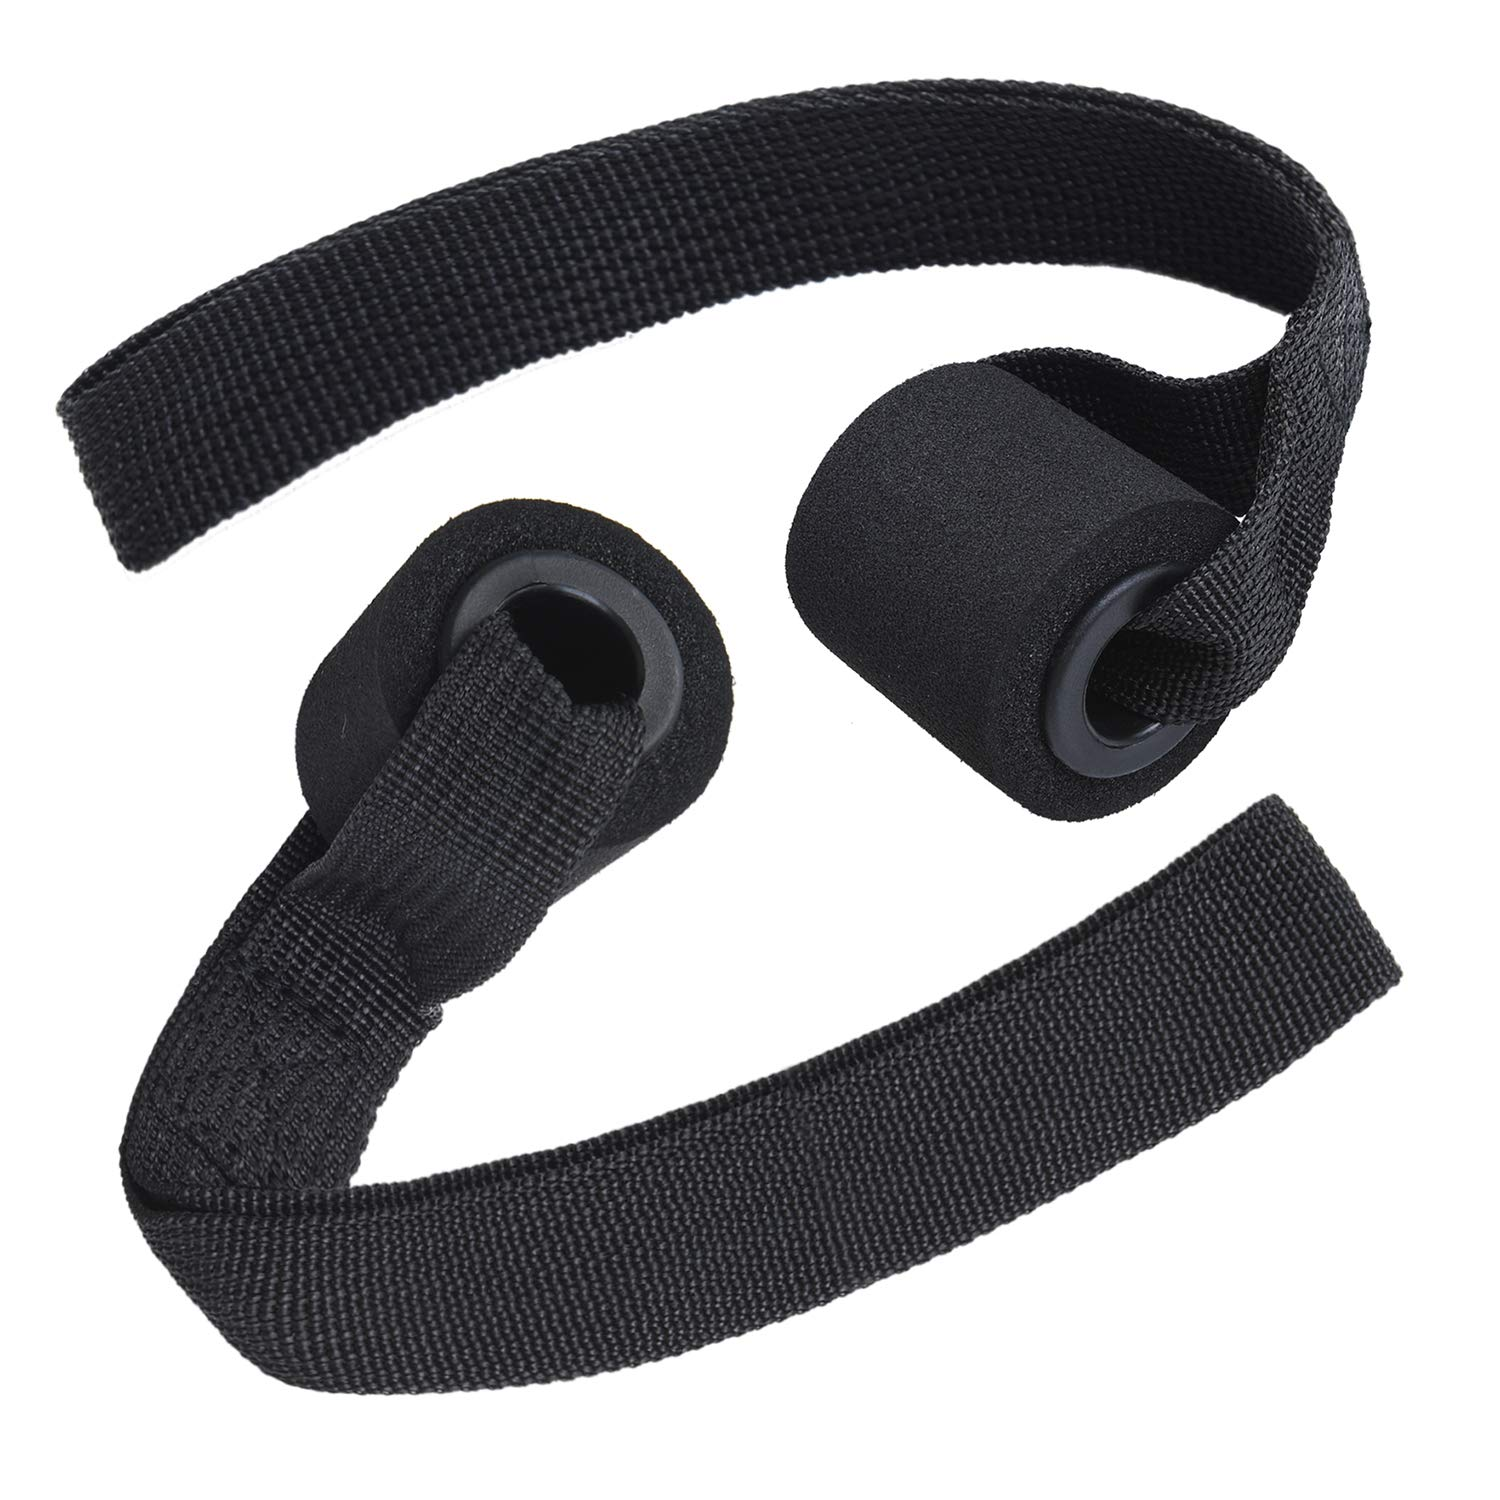 Fitness Accessories Gear Workout Equipment For Home Training Balance Board Sport Resistance Bands Door Anchor Exercise Set